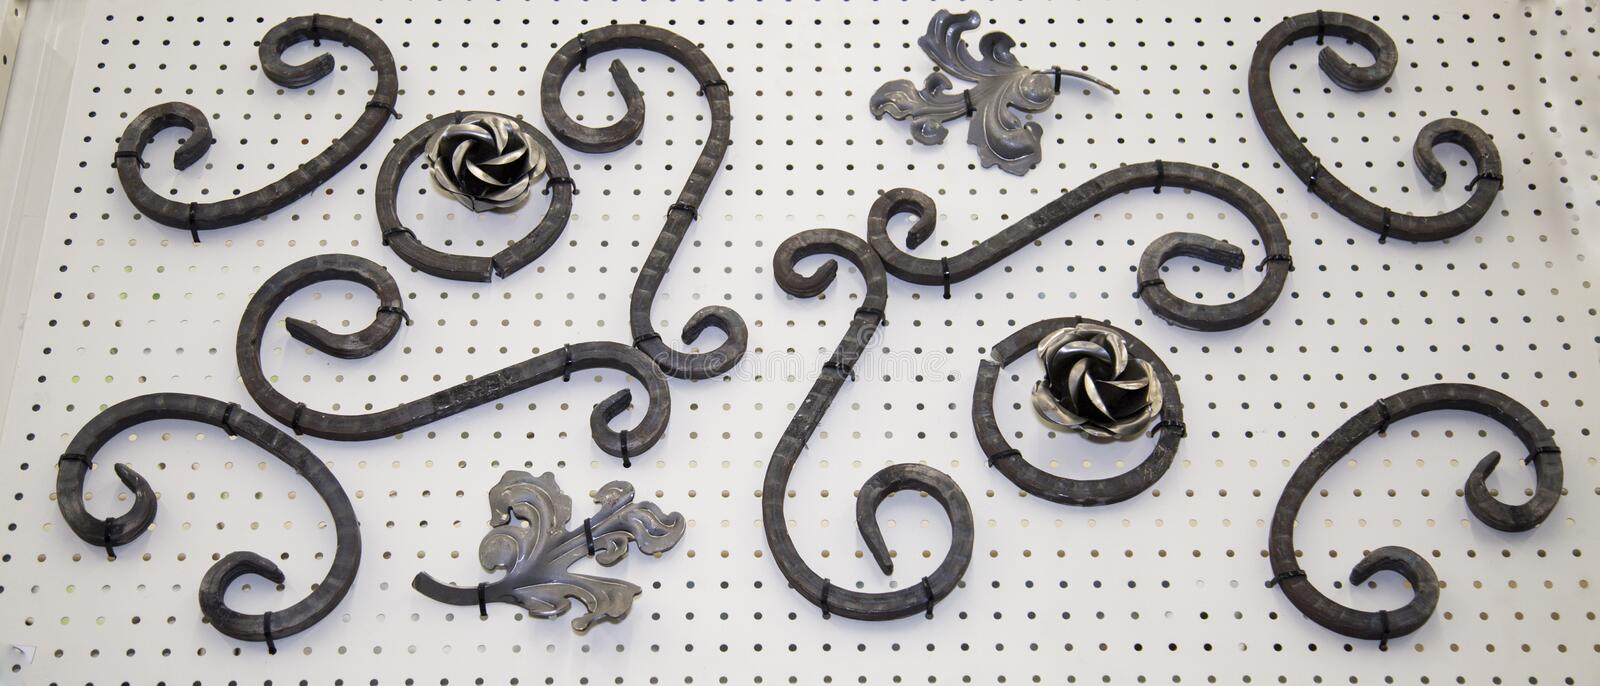 Forged metal products in the form of curls, circles, flowers, leaves fixed on a white stand. Construction, repair, art stock photography